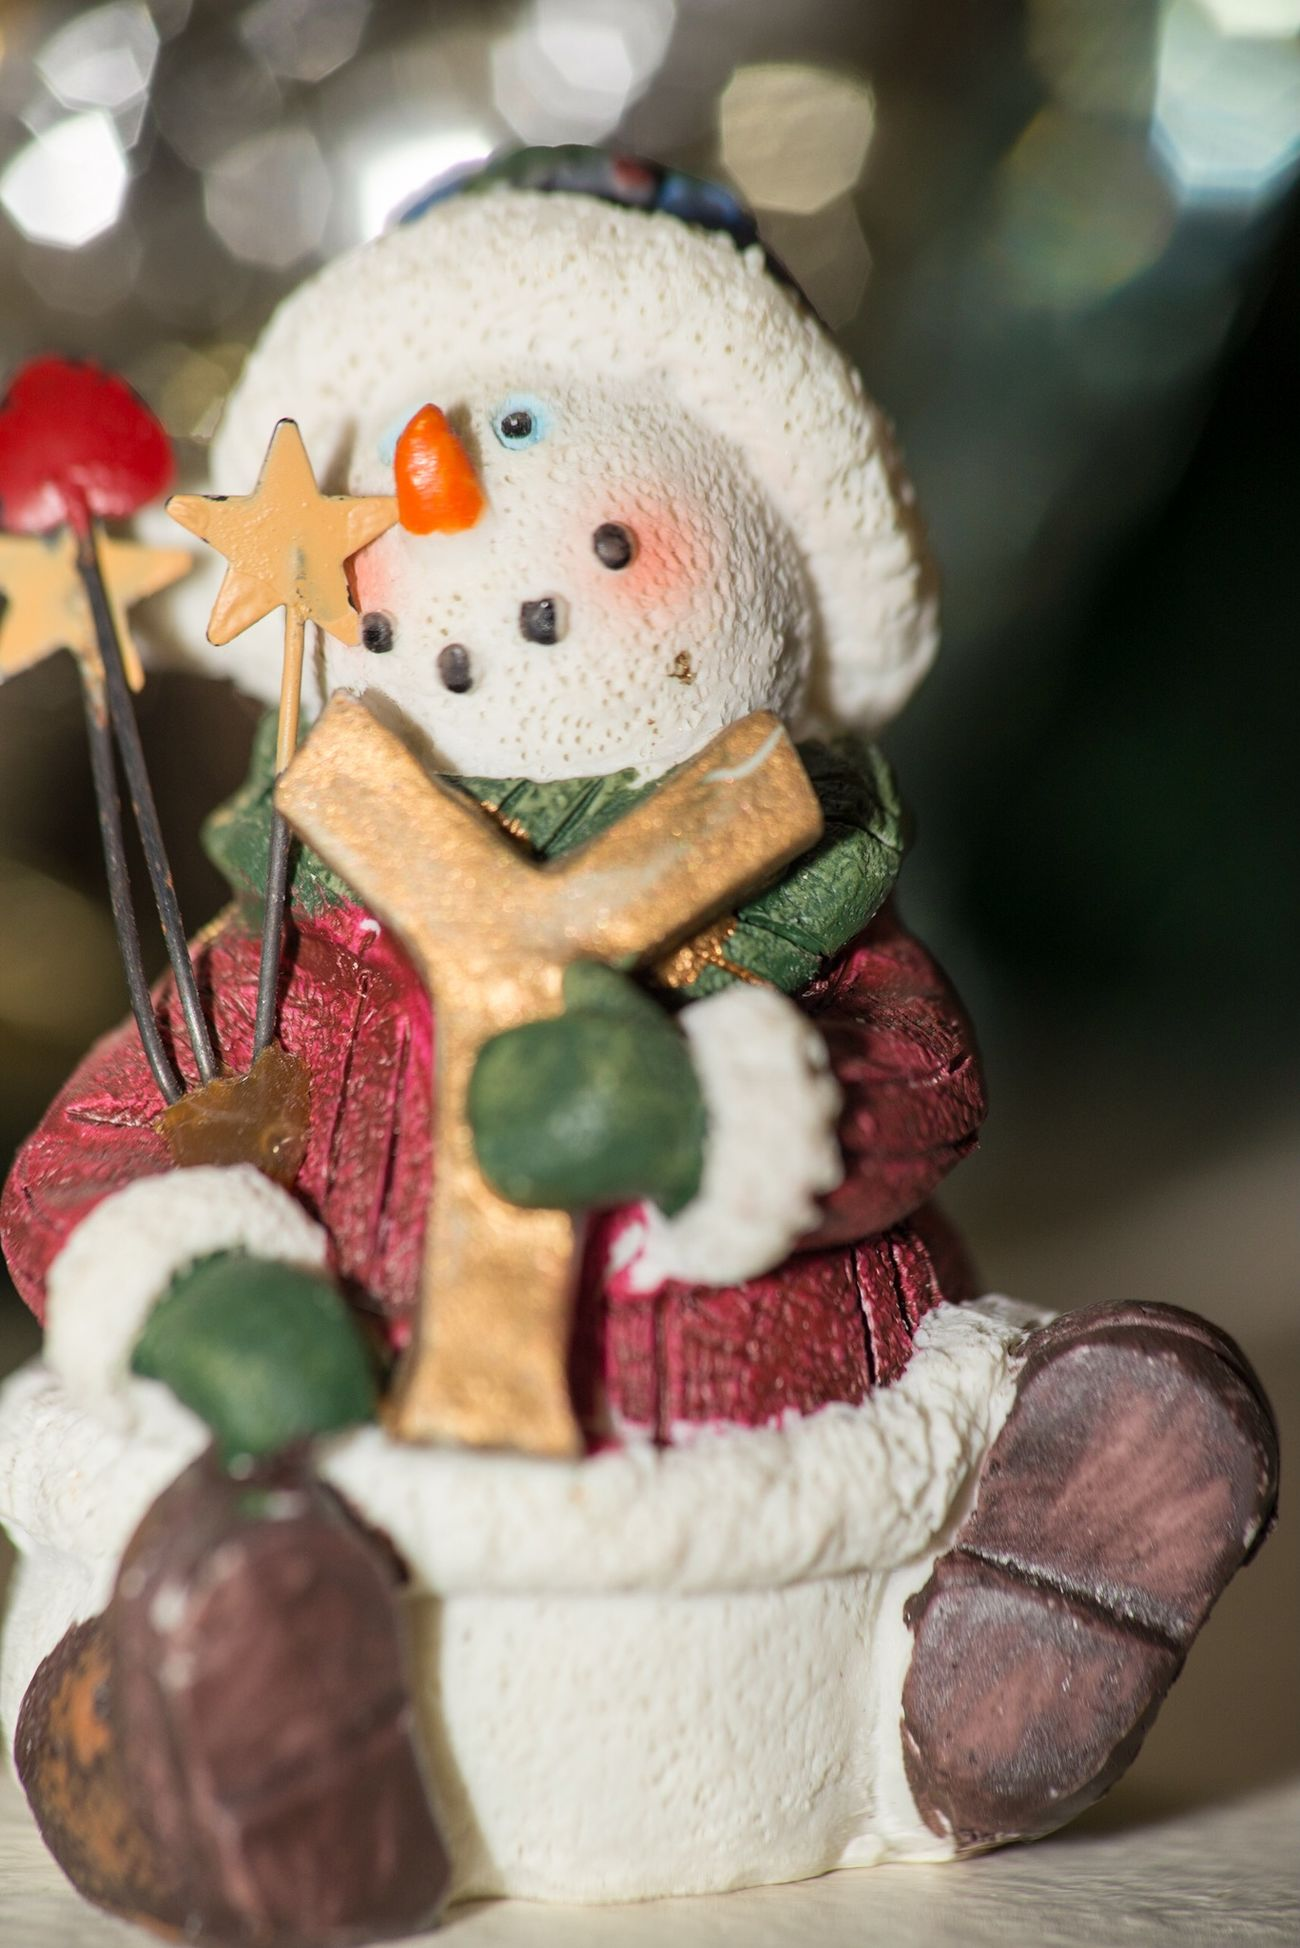 Ceramic Snowman Christmas Decorations Xmas Christmas Streamzoofamily Bokeh Photooftheday Check This Out Nikon Notes From The Underground Winter Solstice Taking Photos Canon D500 Happy Taking Pictures Snowman